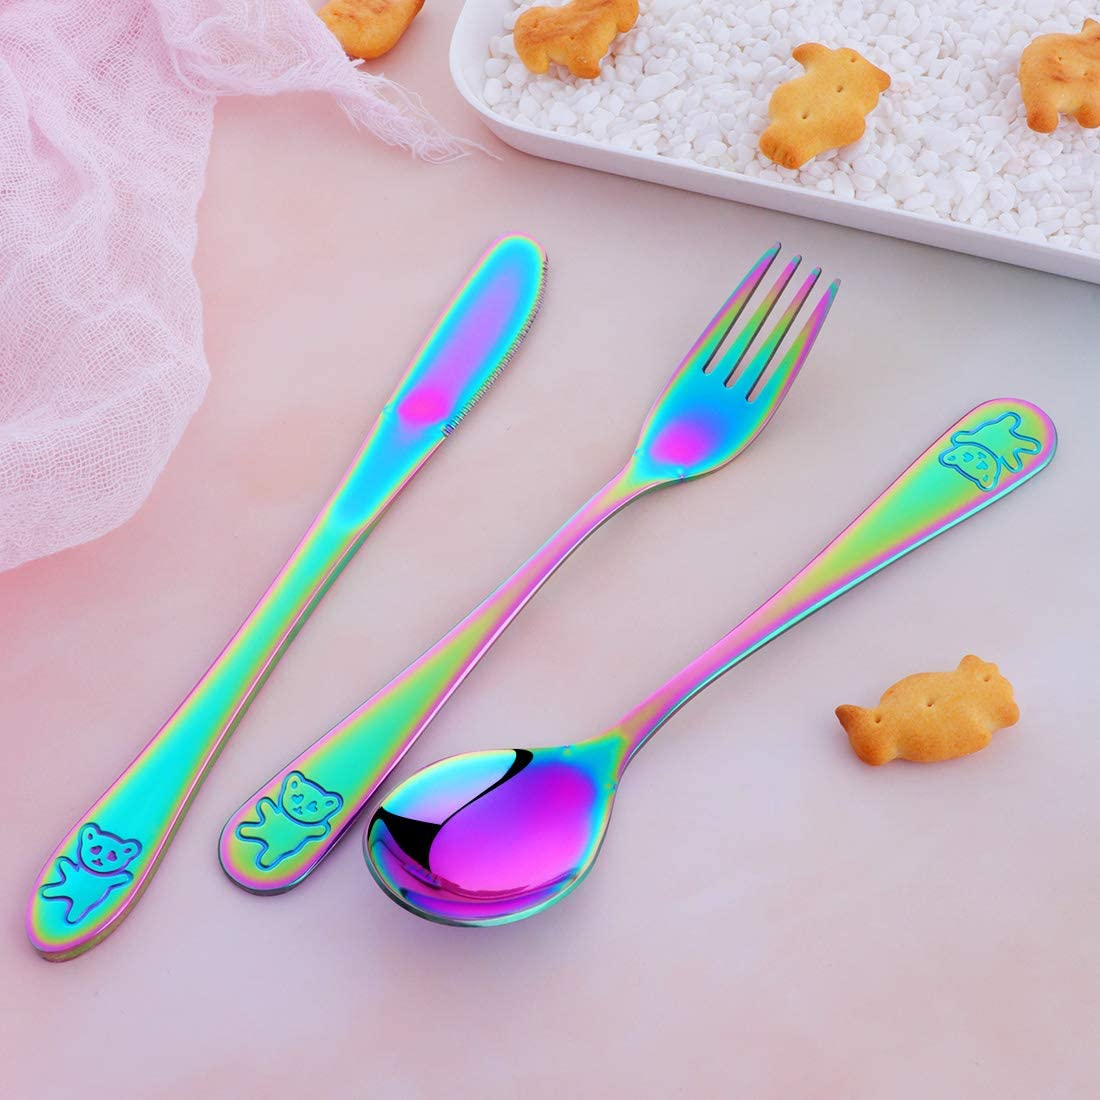 Stainless Steel Kids Flatware Silverware FDA Set of 2 GOGOJOY Safe Child Cutlery Toddler Utensil Cute and Colorful Ideal for Home and Preschools